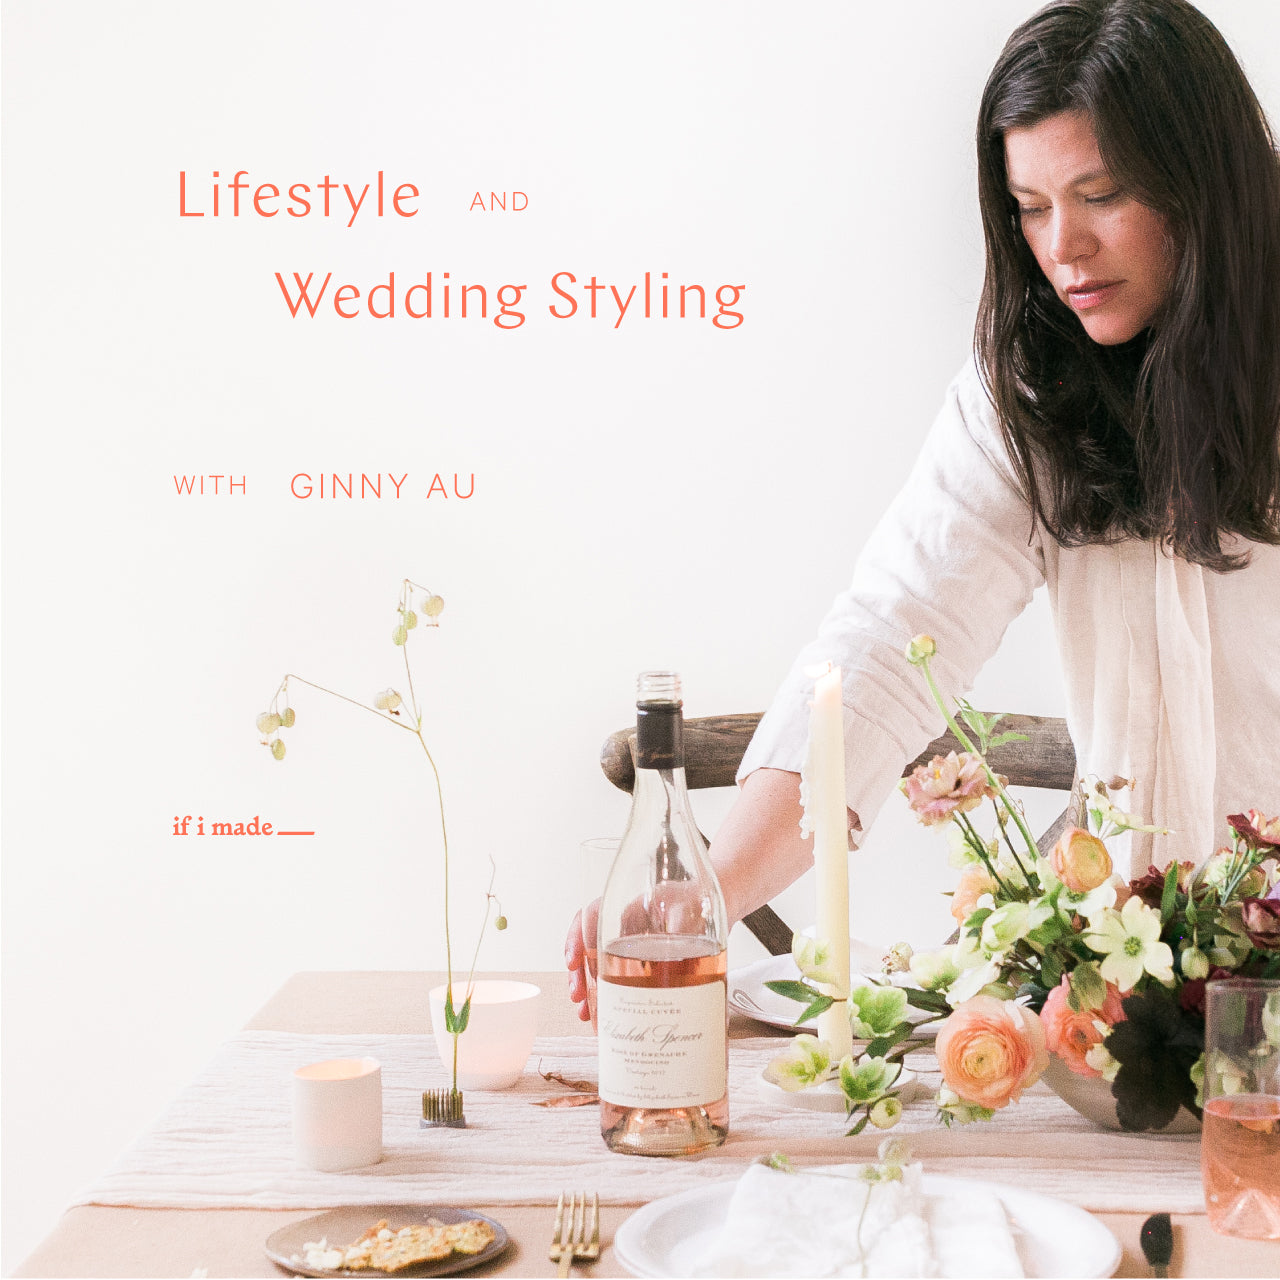 Retail Payment Plan - Lifestyle and Wedding Styling by Ginny Au 4 Payments of $349